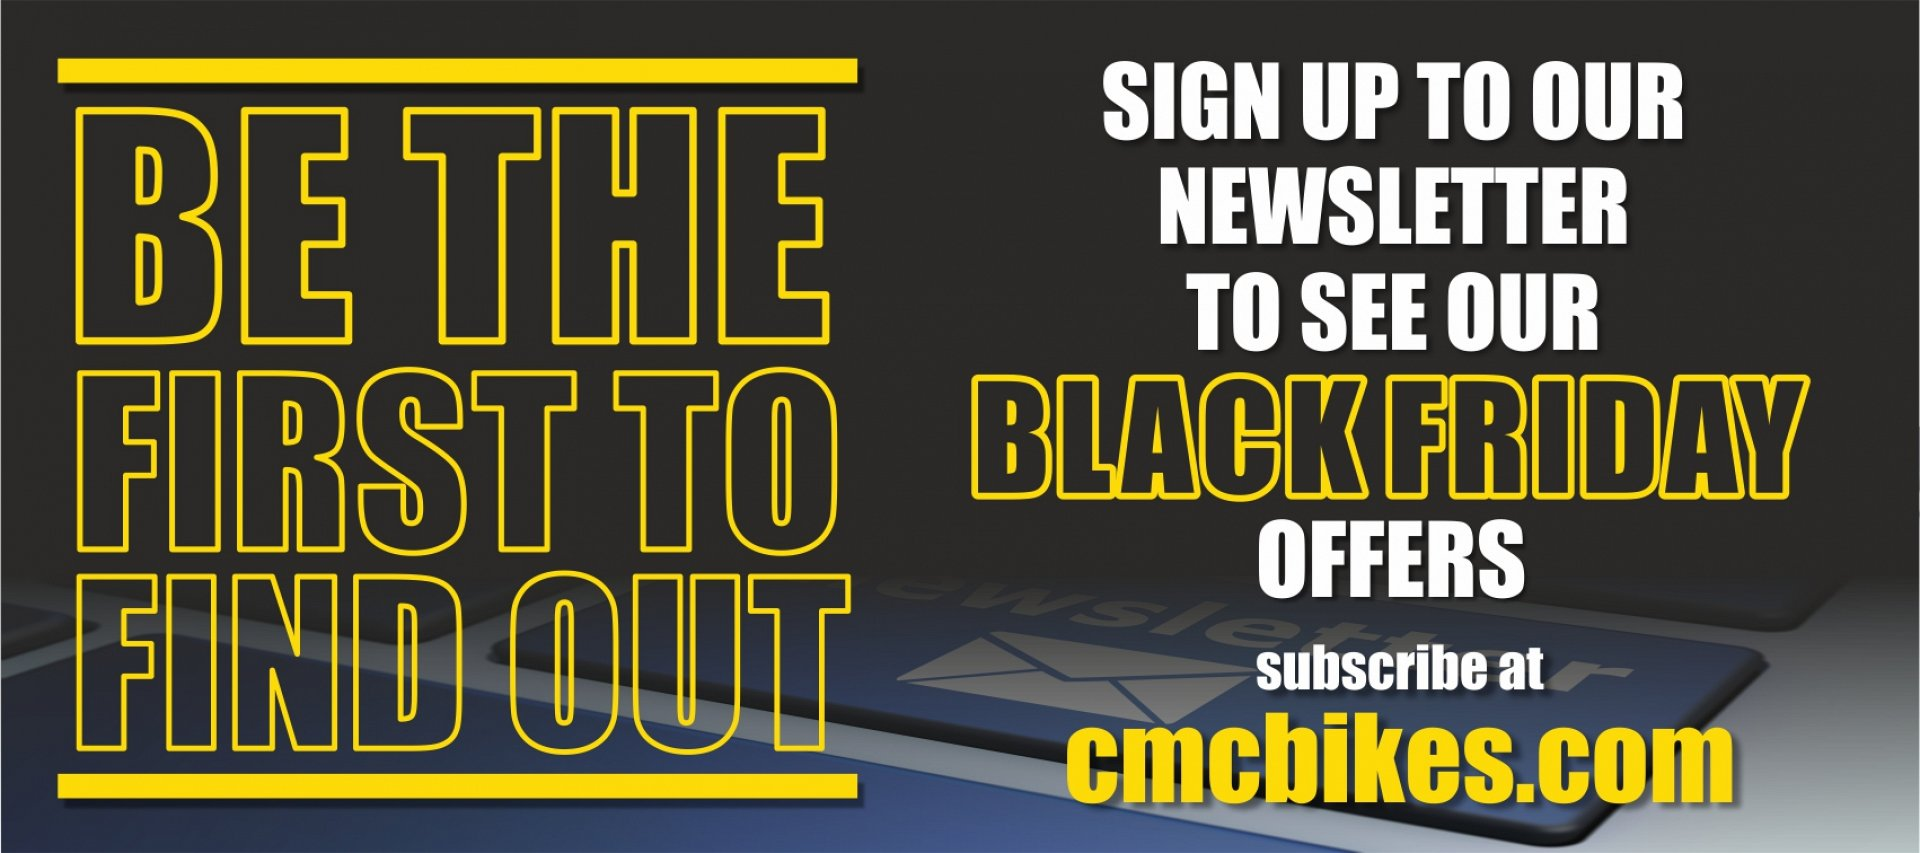 Sign up to our newsletter to be the first to know!